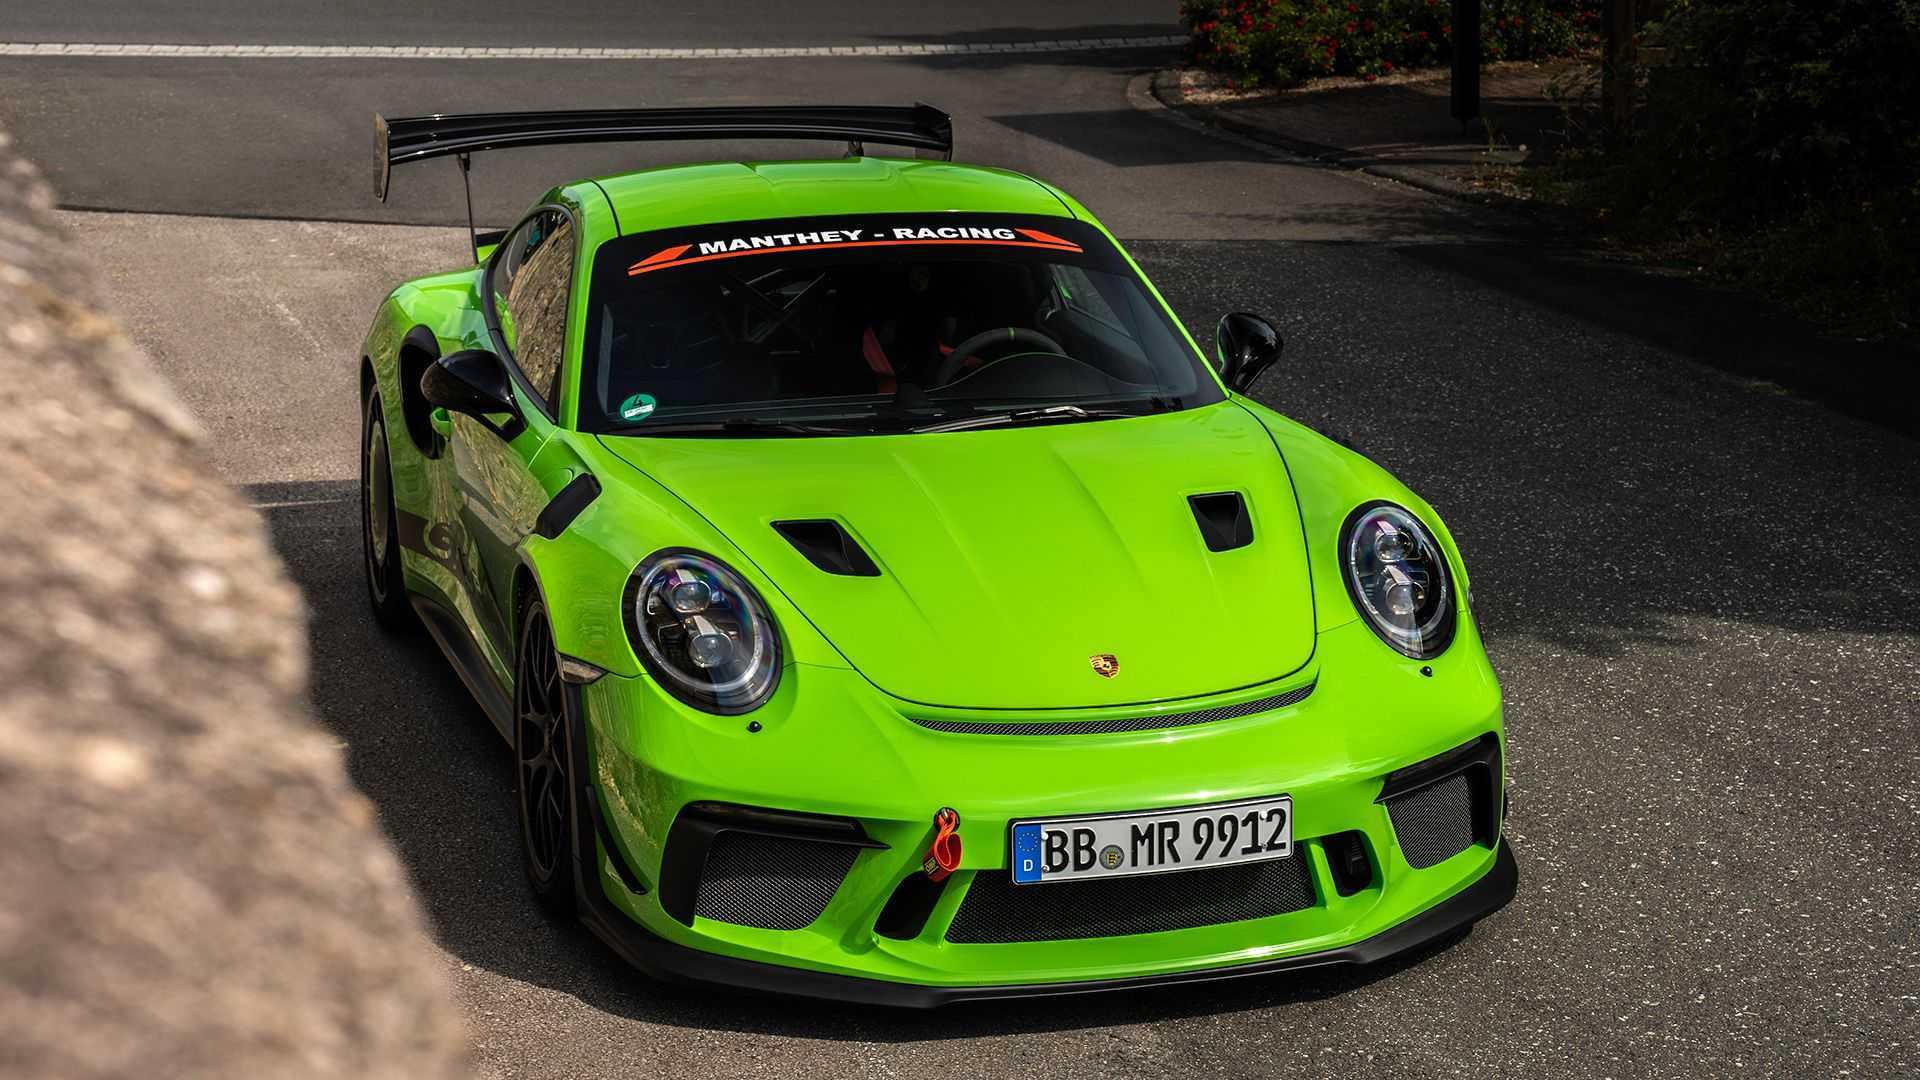 Porsche-911-GT3-RS-by-Manthey-Racing-1